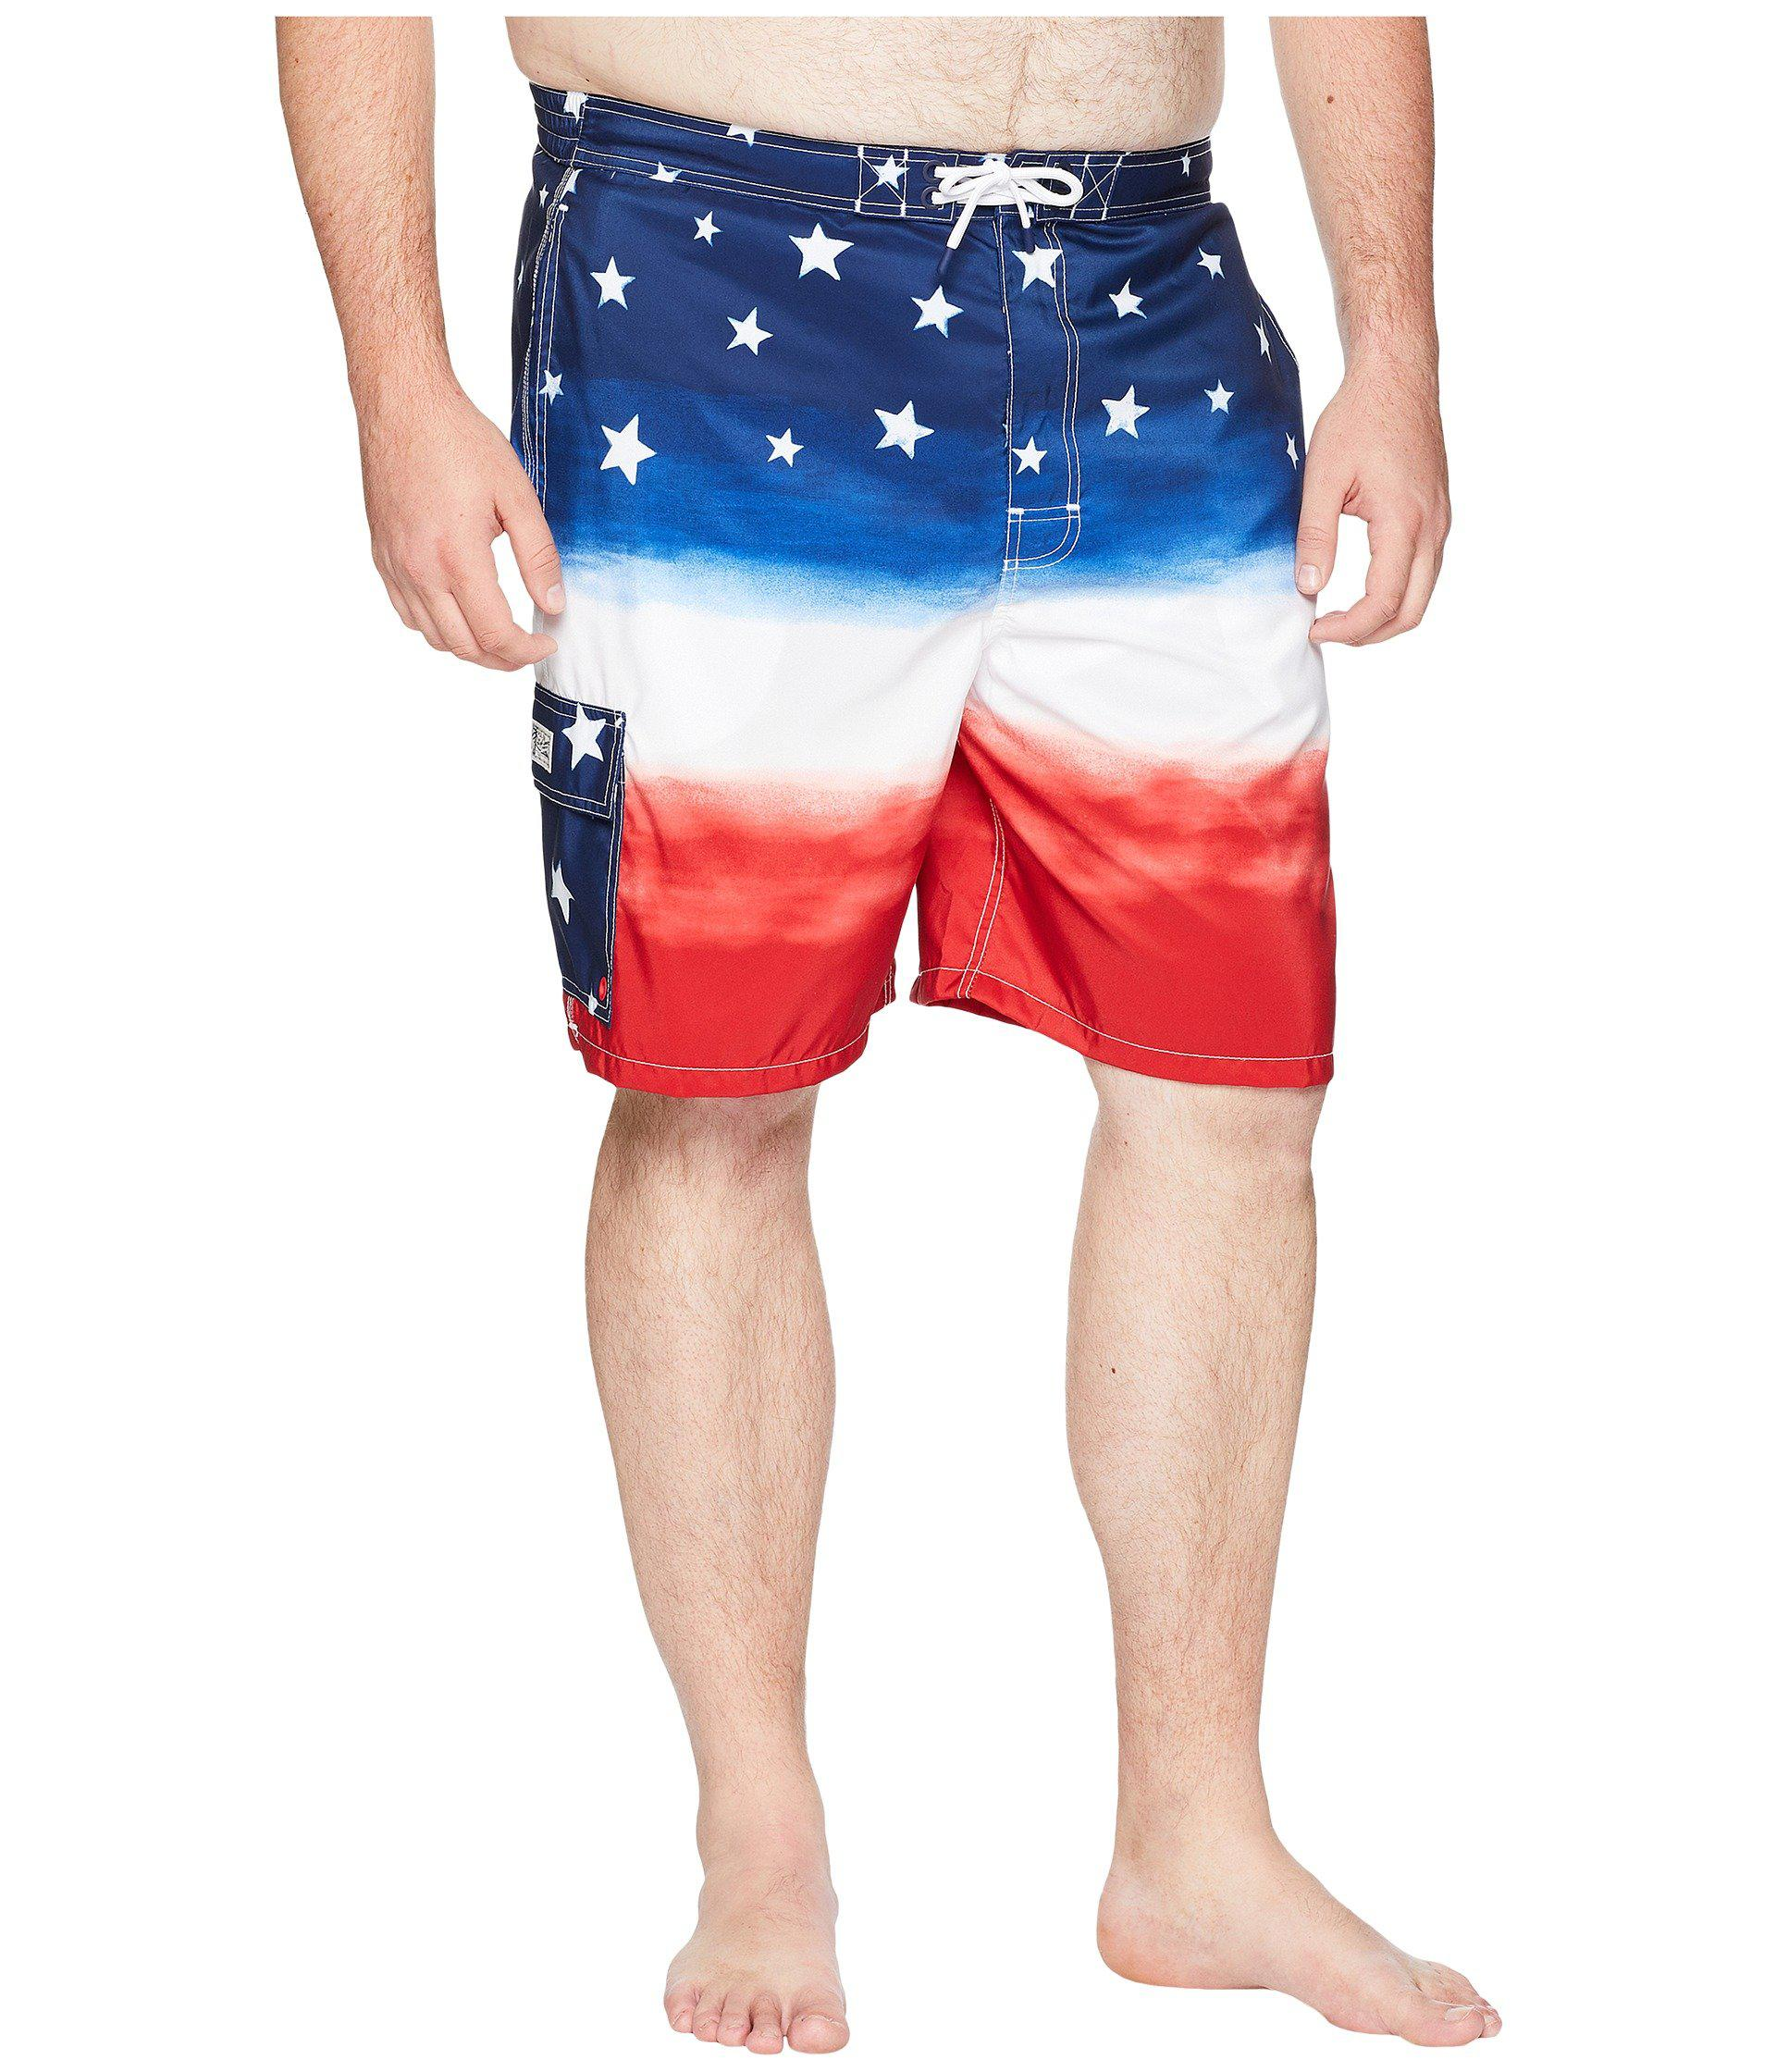 8610e61b95 Lyst - Polo Ralph Lauren Big & Tall Polyester Kaiula Swim Trunk in ...